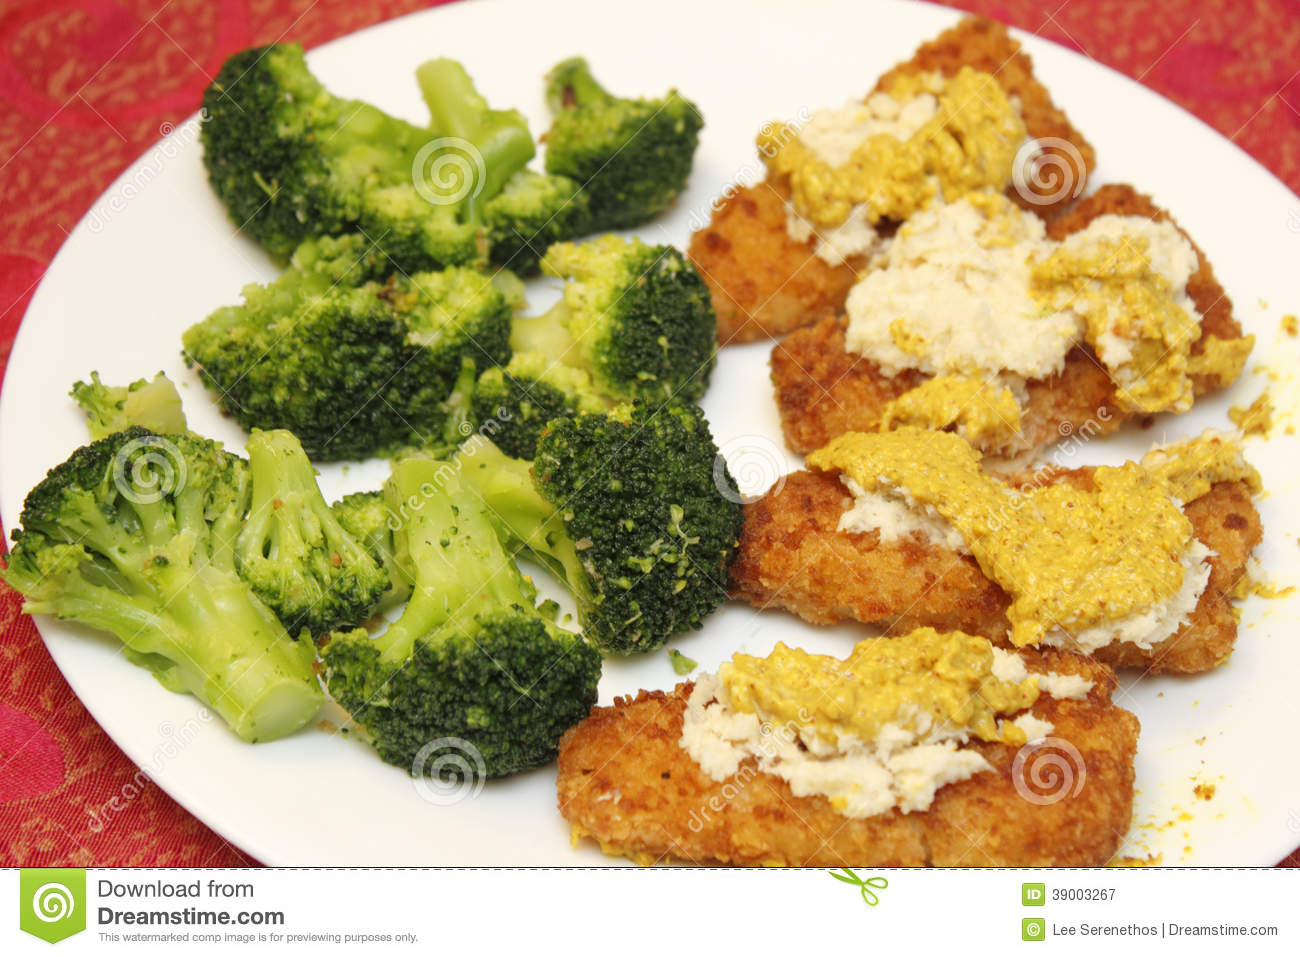 Broccoli and fish fillets stock photo image 39003267 for Fish and broccoli diet